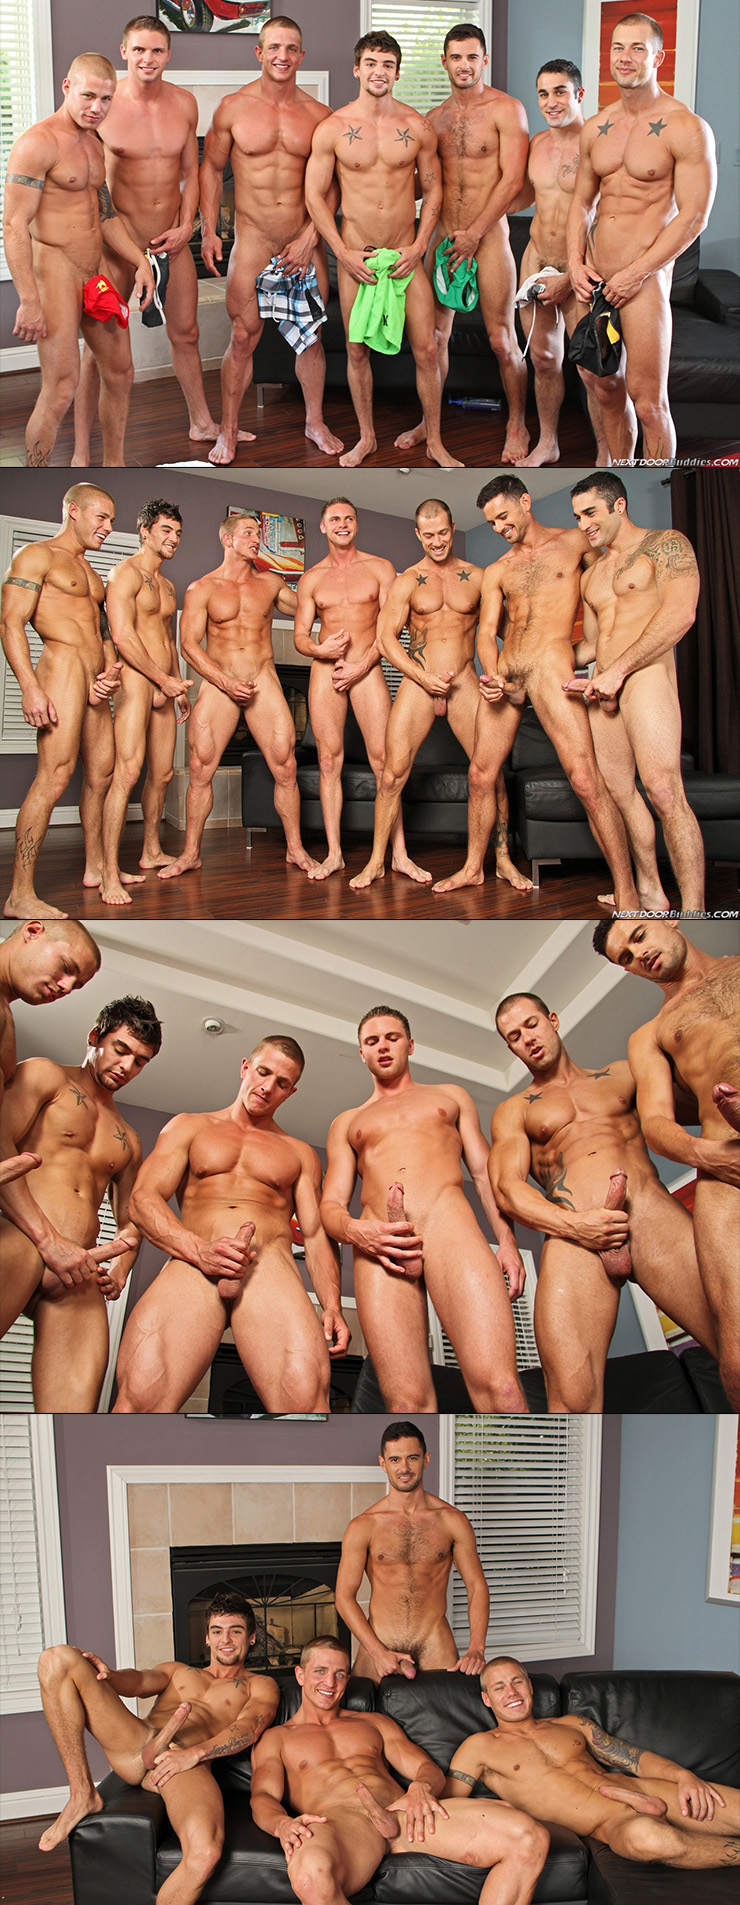 NextDoorStudios Suds & Studs Marcus Mojo Johnny Torque Rod Daily Donny Wright Brody Wilder Gay Condom Orgy Male Feet Big Cocks Tattoos 2